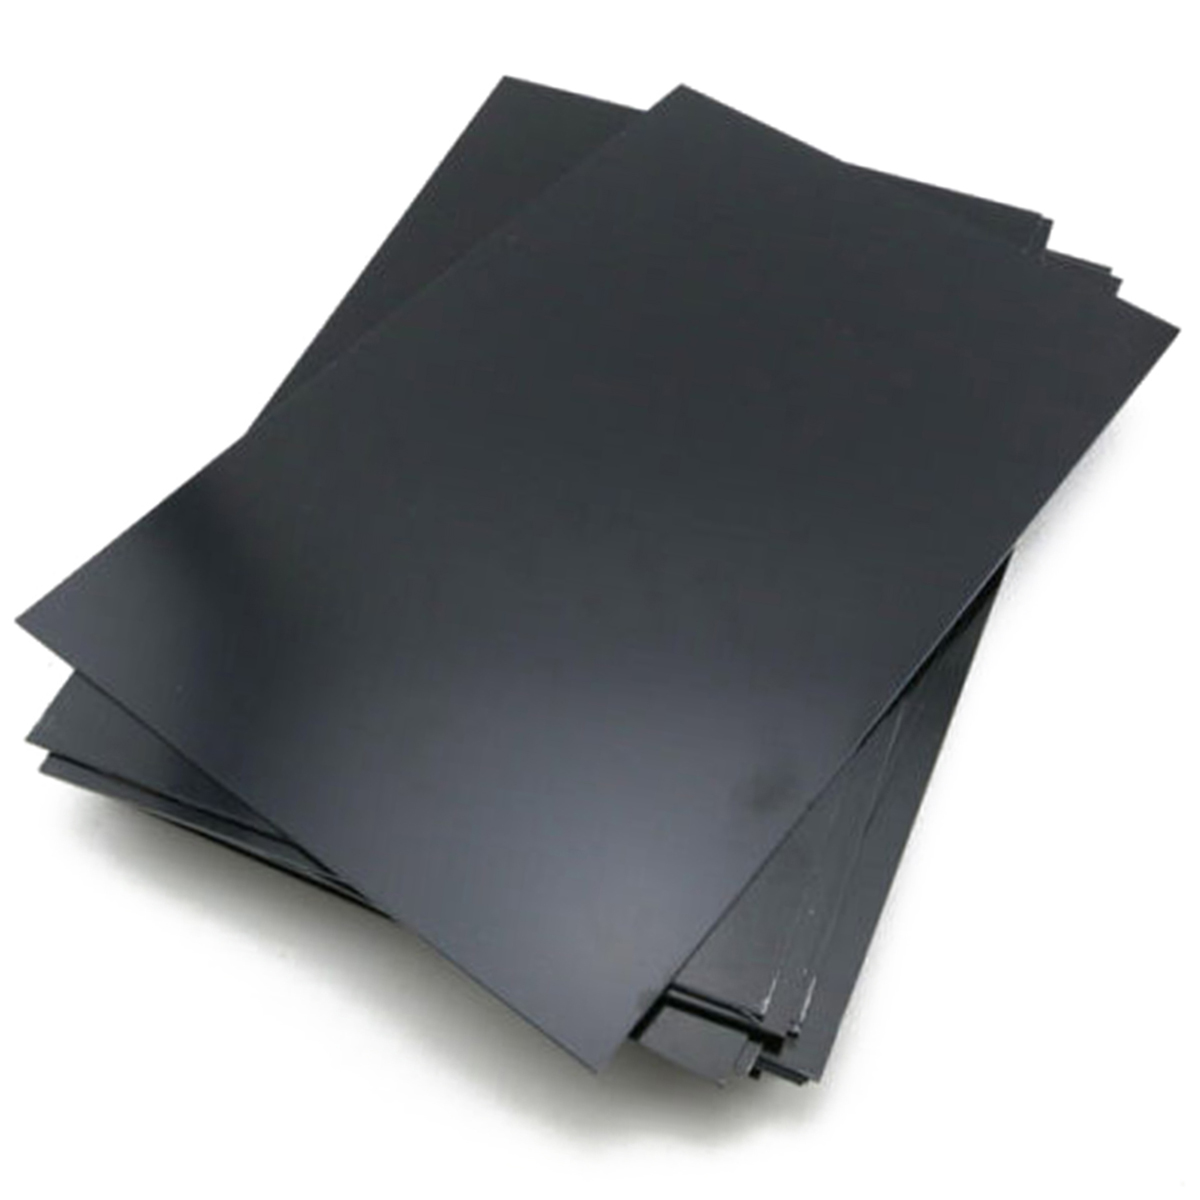 Abs Plastic Plaat 1 Piece Brand New Durable Black Abs Plastic Sheet Styrene